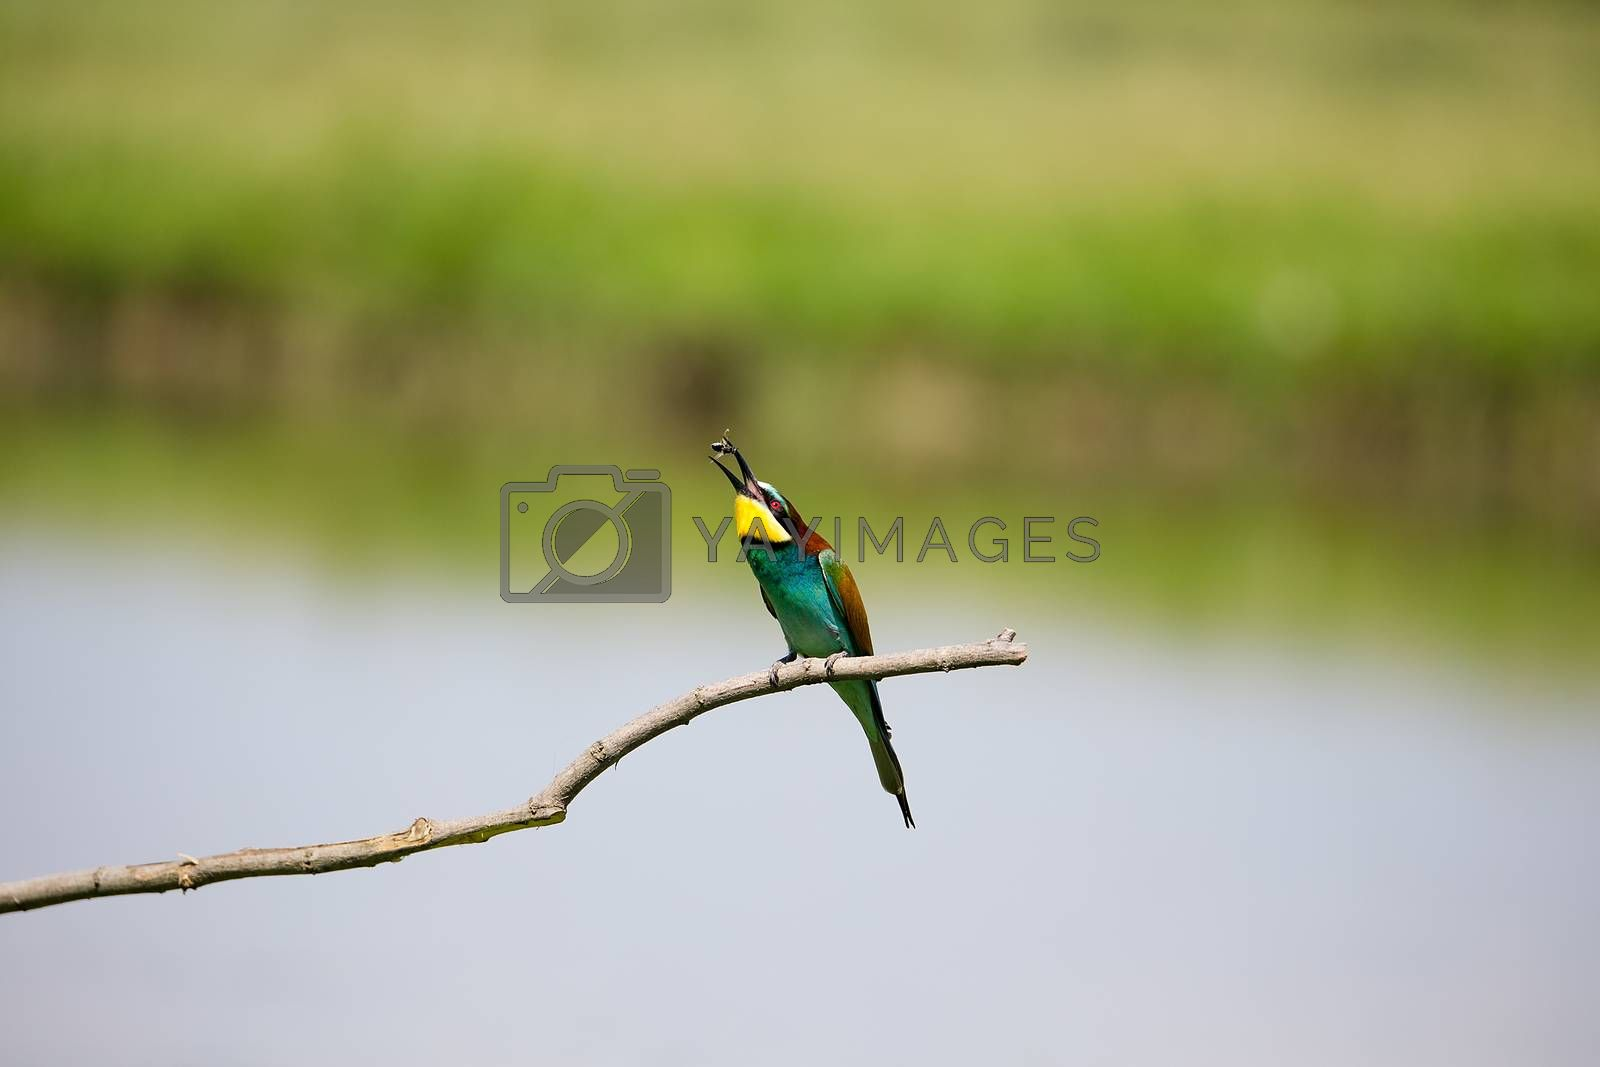 European Bee-eater playing with insect (Merops apiaster) on brunch - Bird Male with Female, Isola della Cona, Monfalcone, Italy, Europe